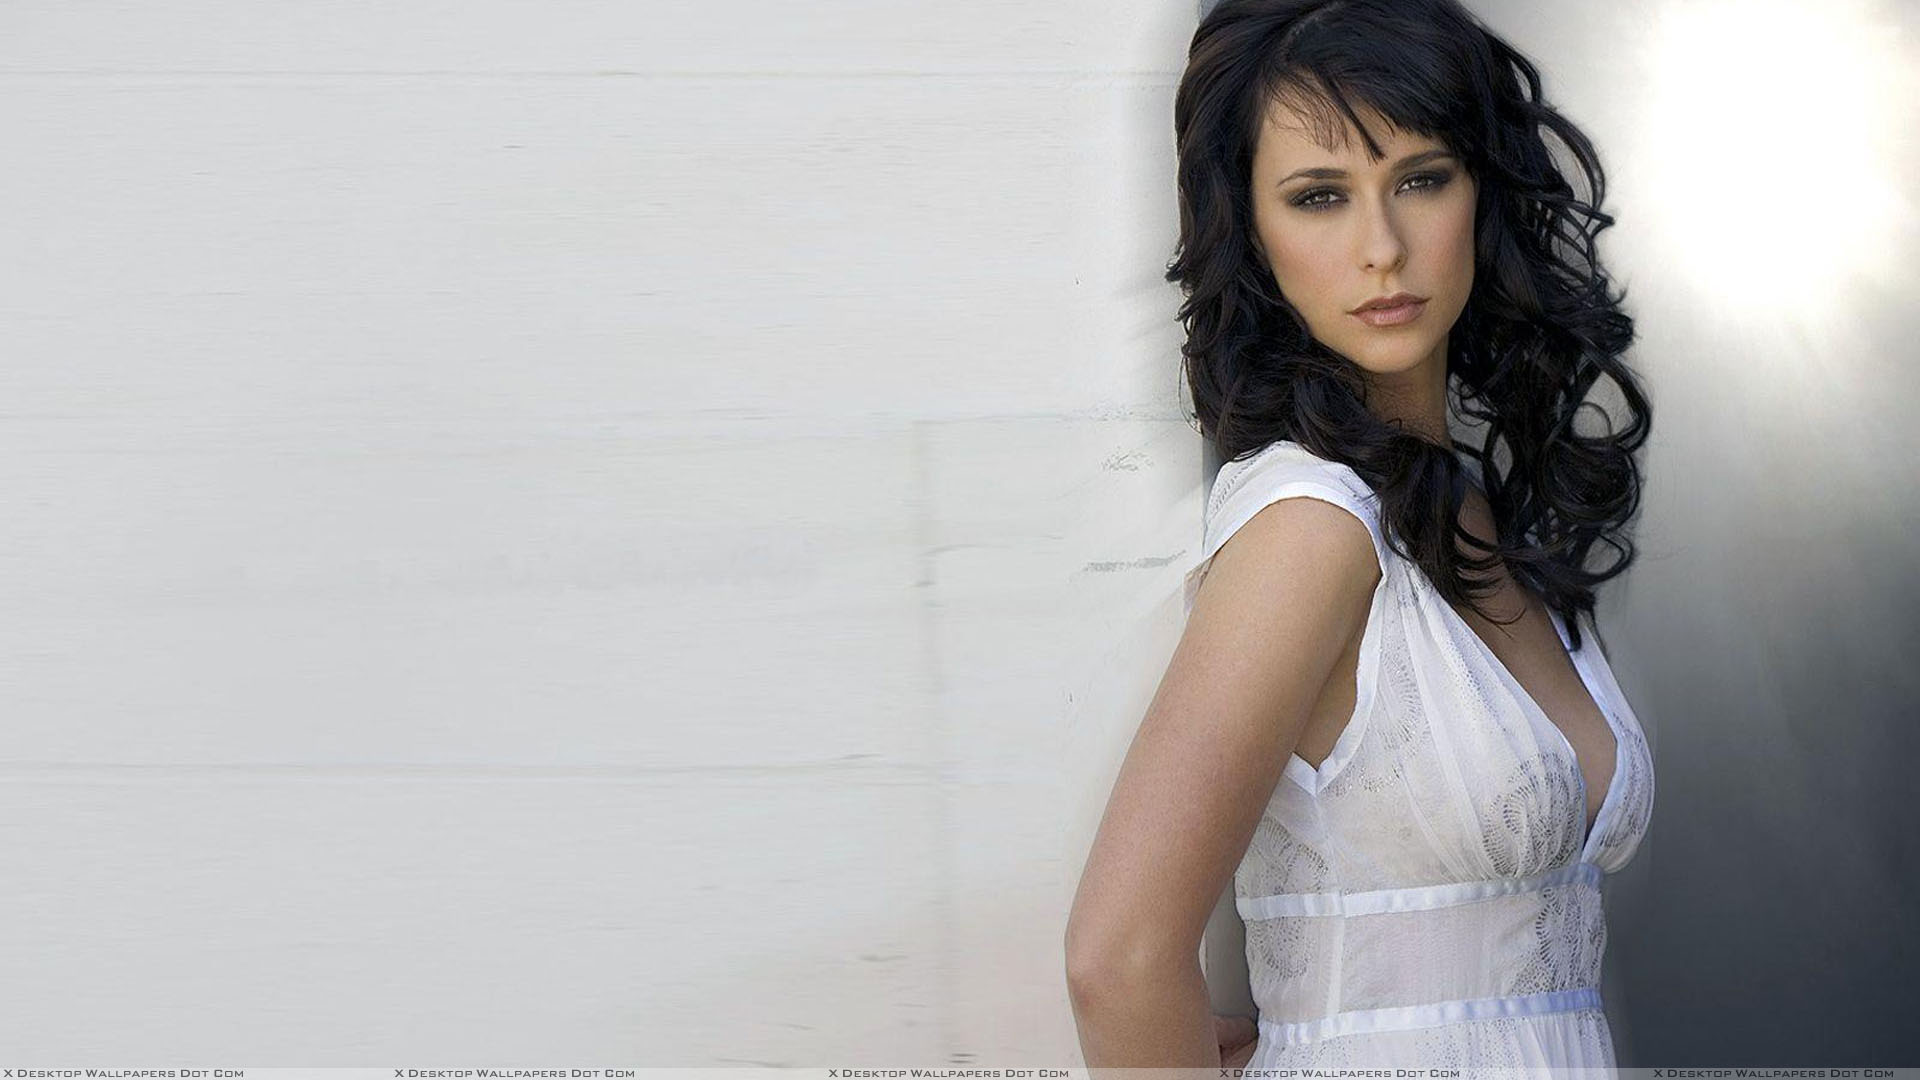 jennifer love hewitt wallpapers photos images in hd